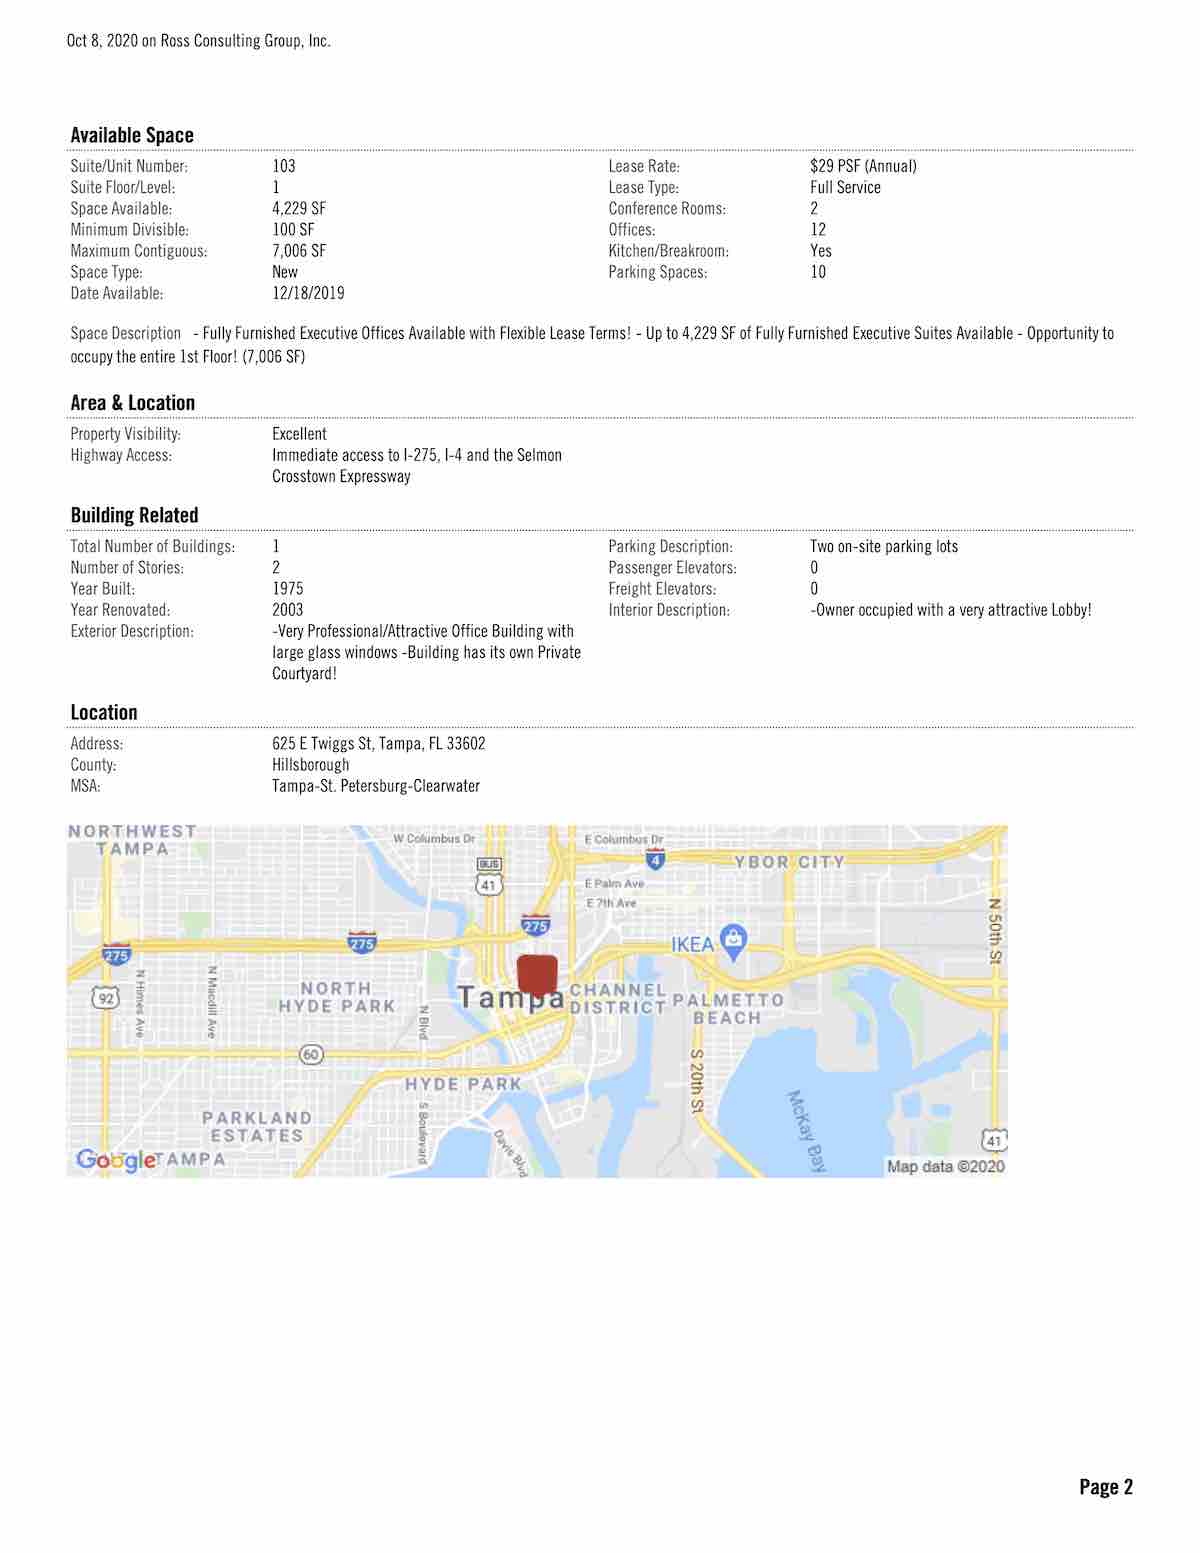 Tampa Commercial Real Estate - FOR LEASE - Courthouse Plaza - 625 E Twiggs St, Tampa, FL 33602 P2